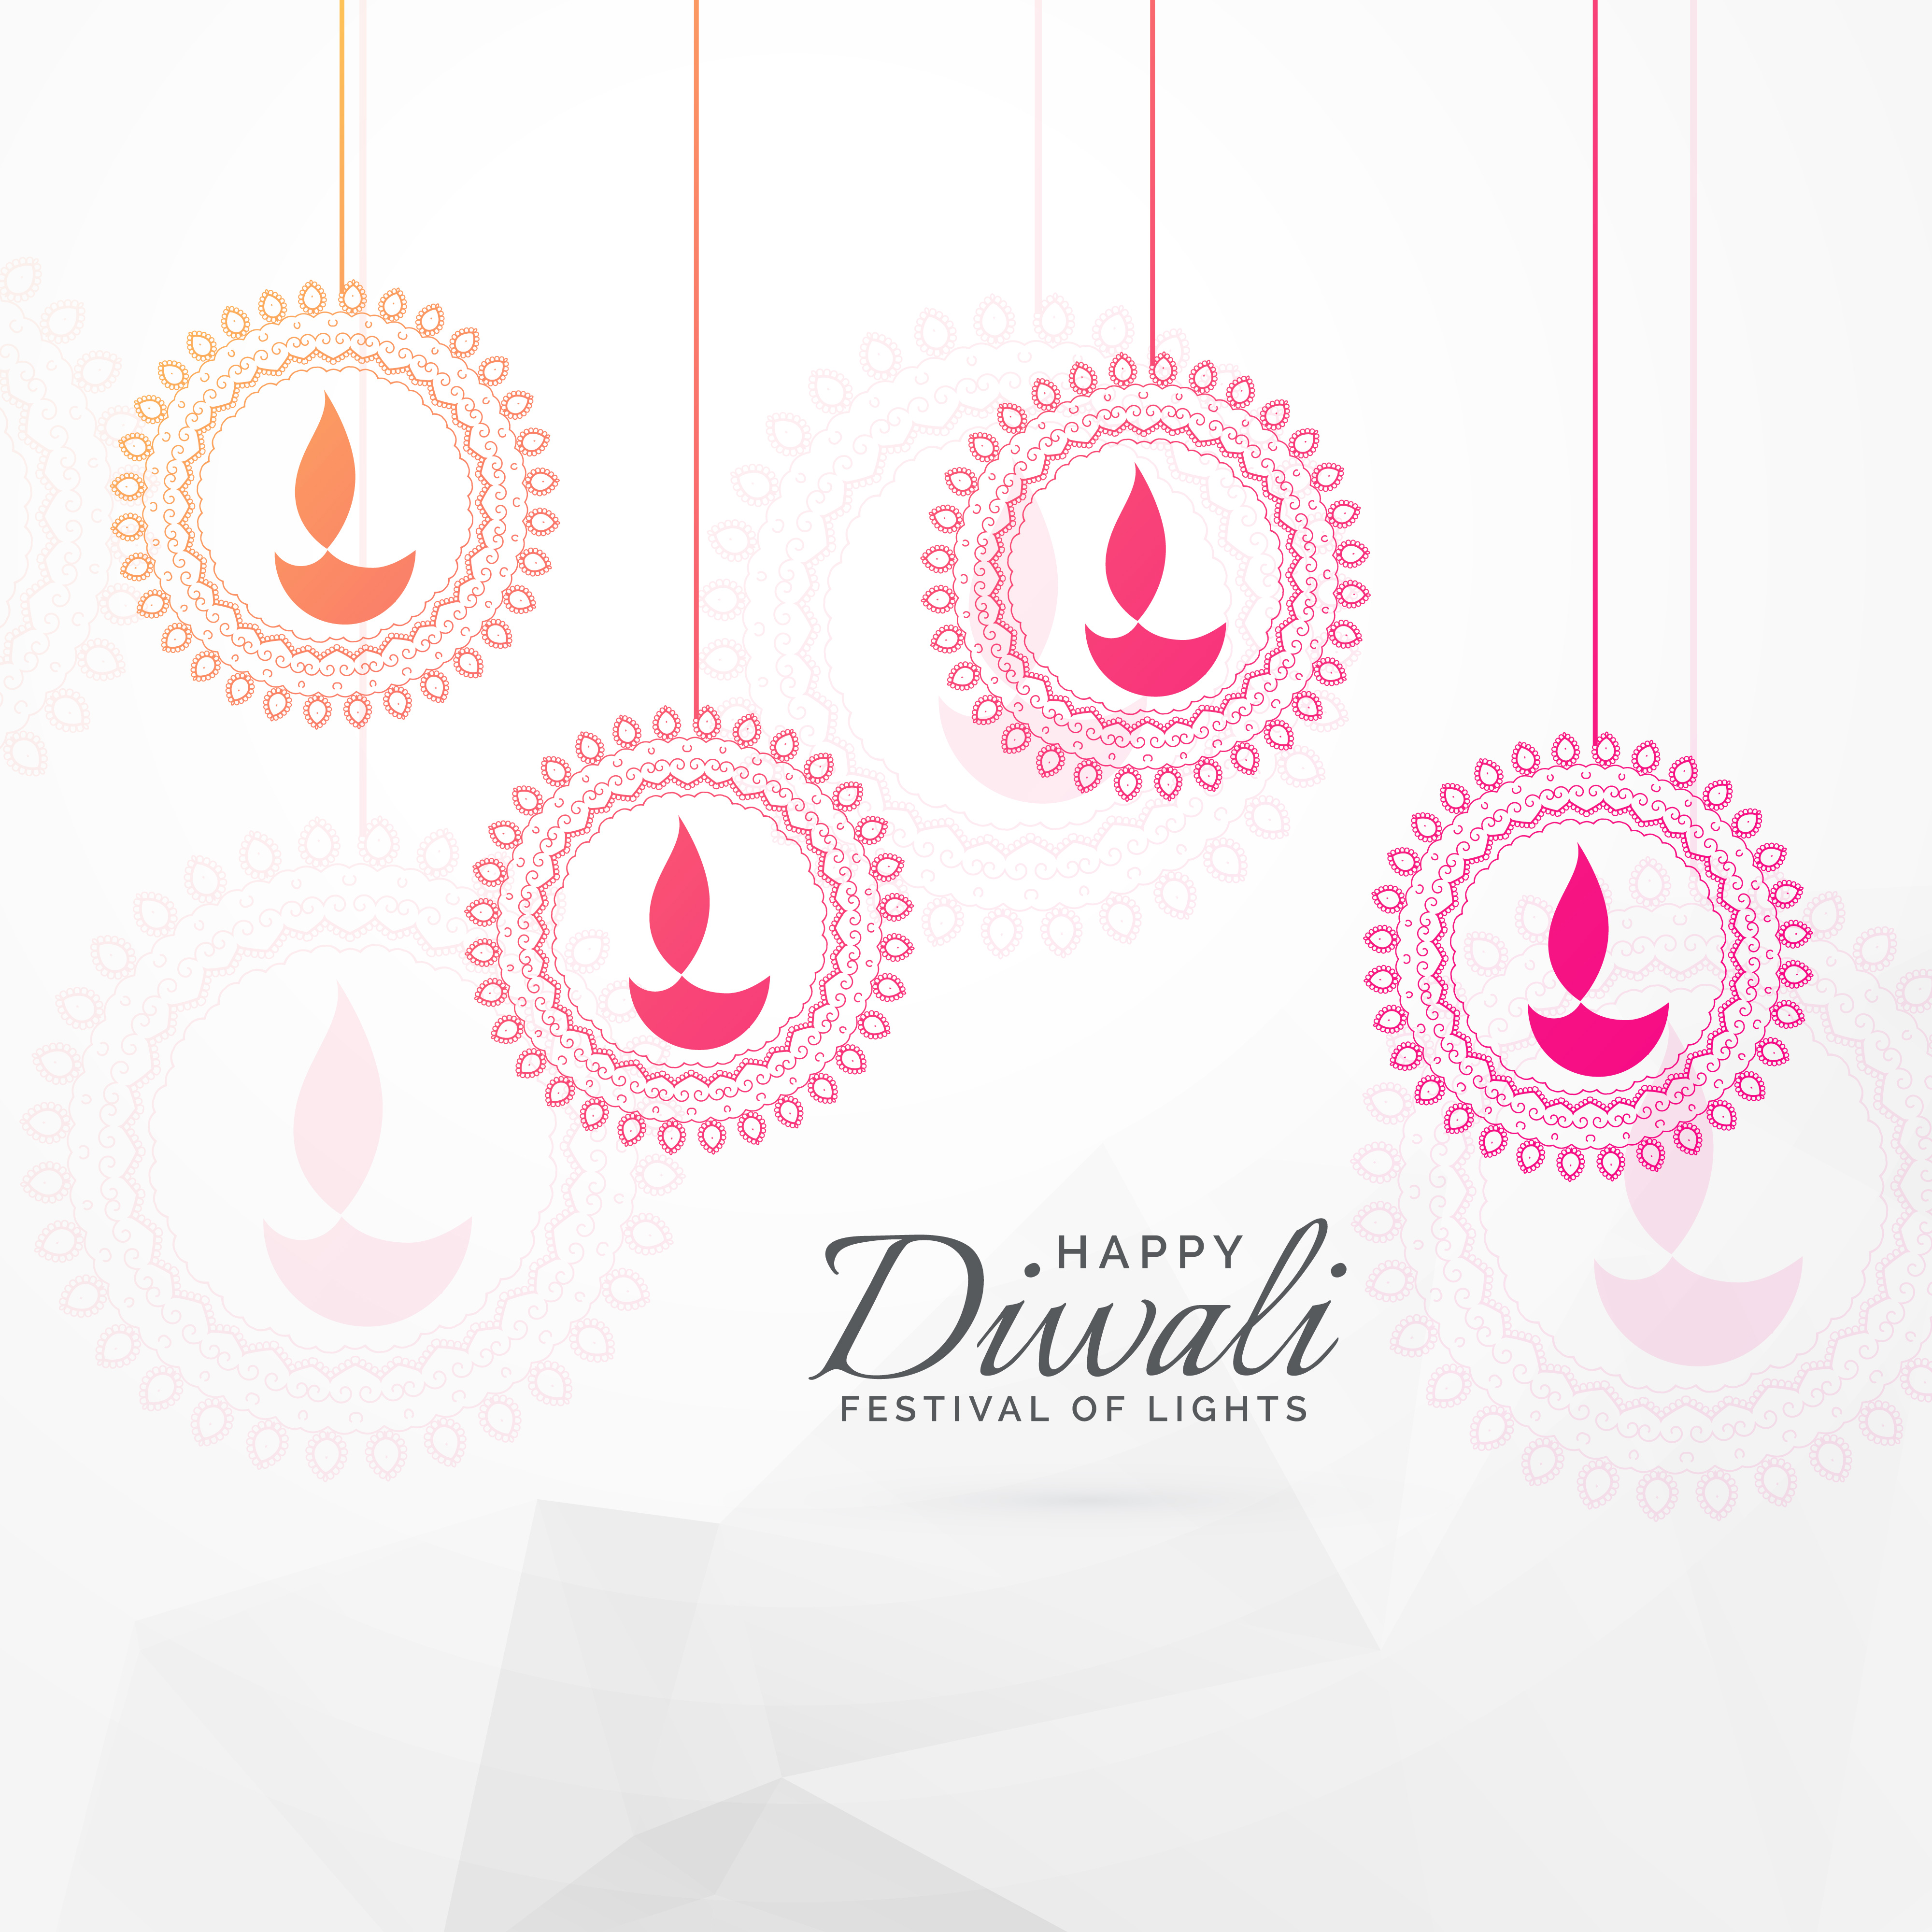 Creative Diwali Festival Greeting Card Design With Hanging